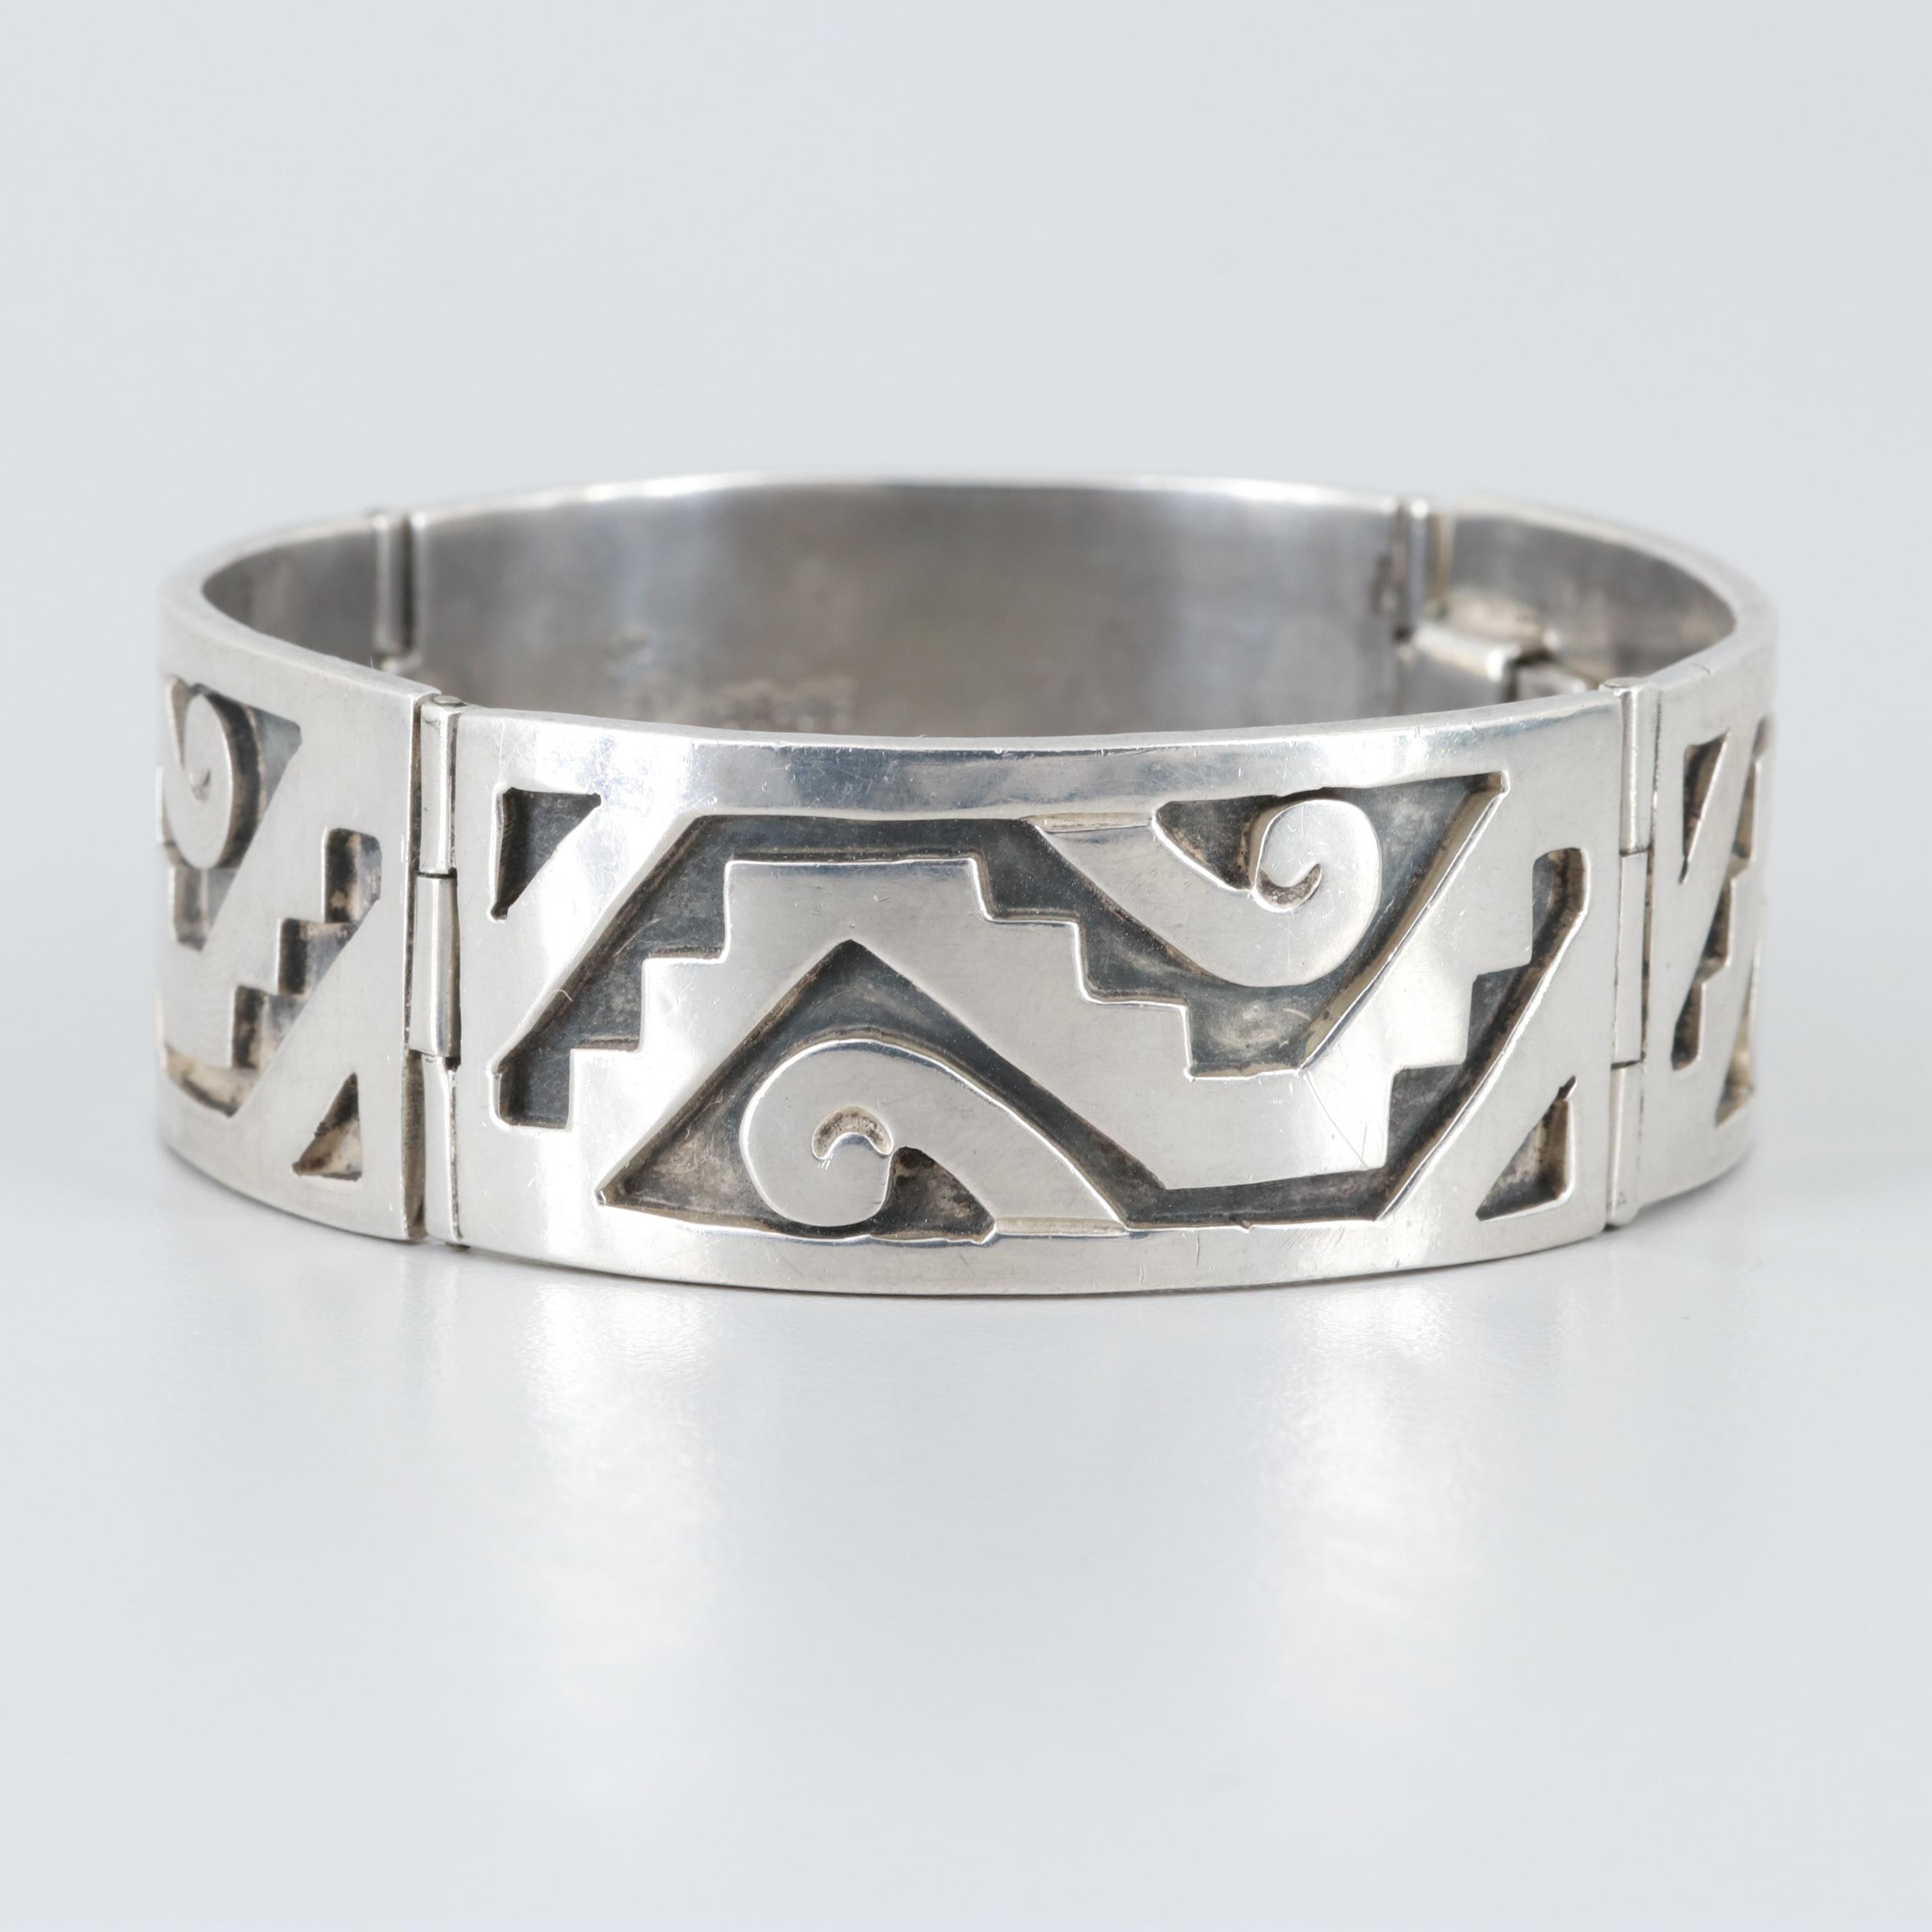 Vintage Taxco Mexico Sterling Silver Hinged Bracelet